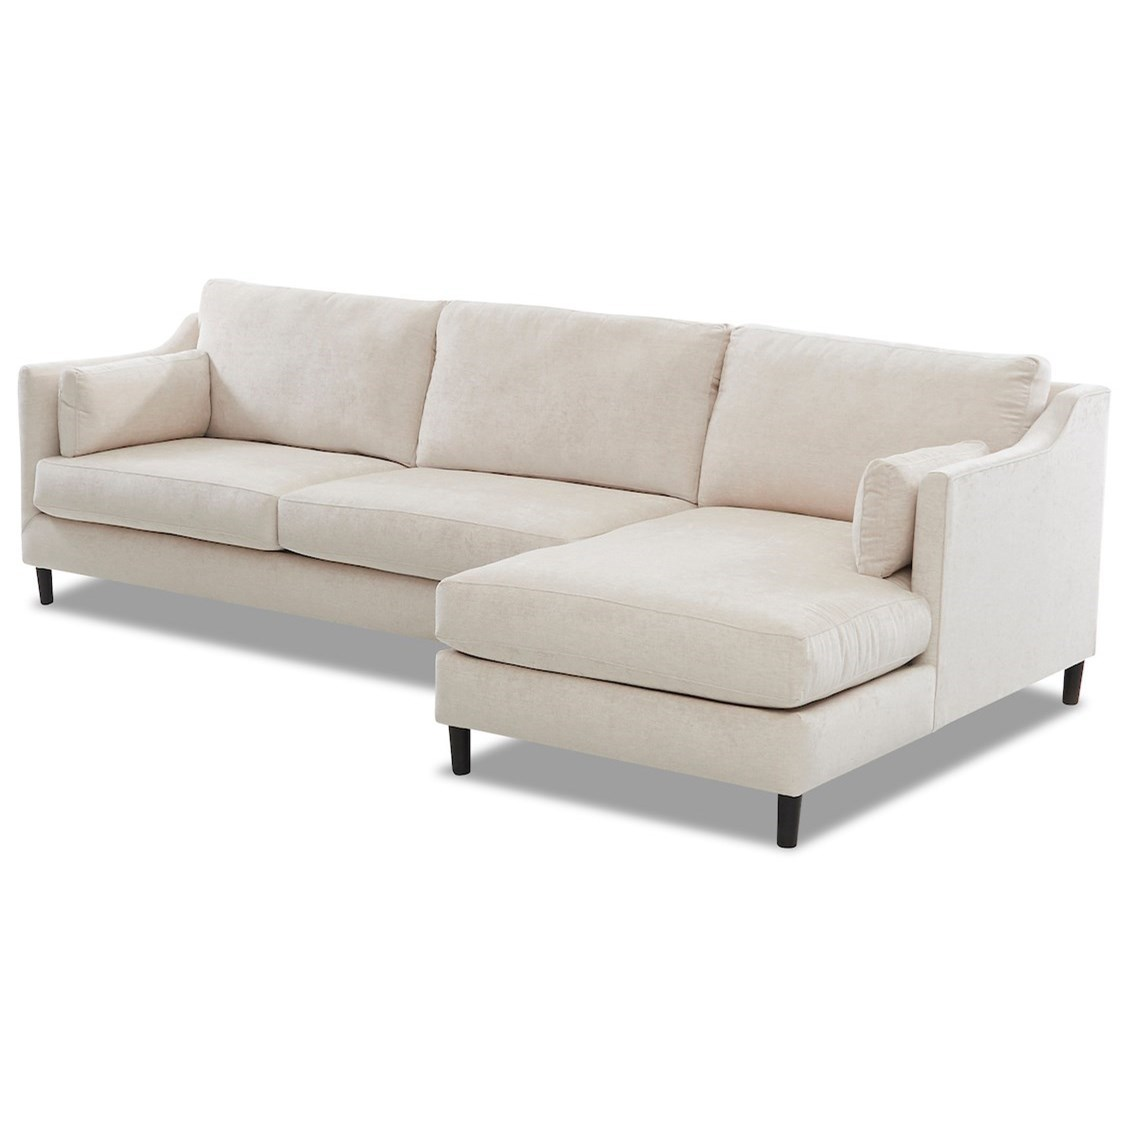 Harlow 3-Seat Modular Chaise Sofa w/ RAF Chaise by Klaussner at Northeast Factory Direct